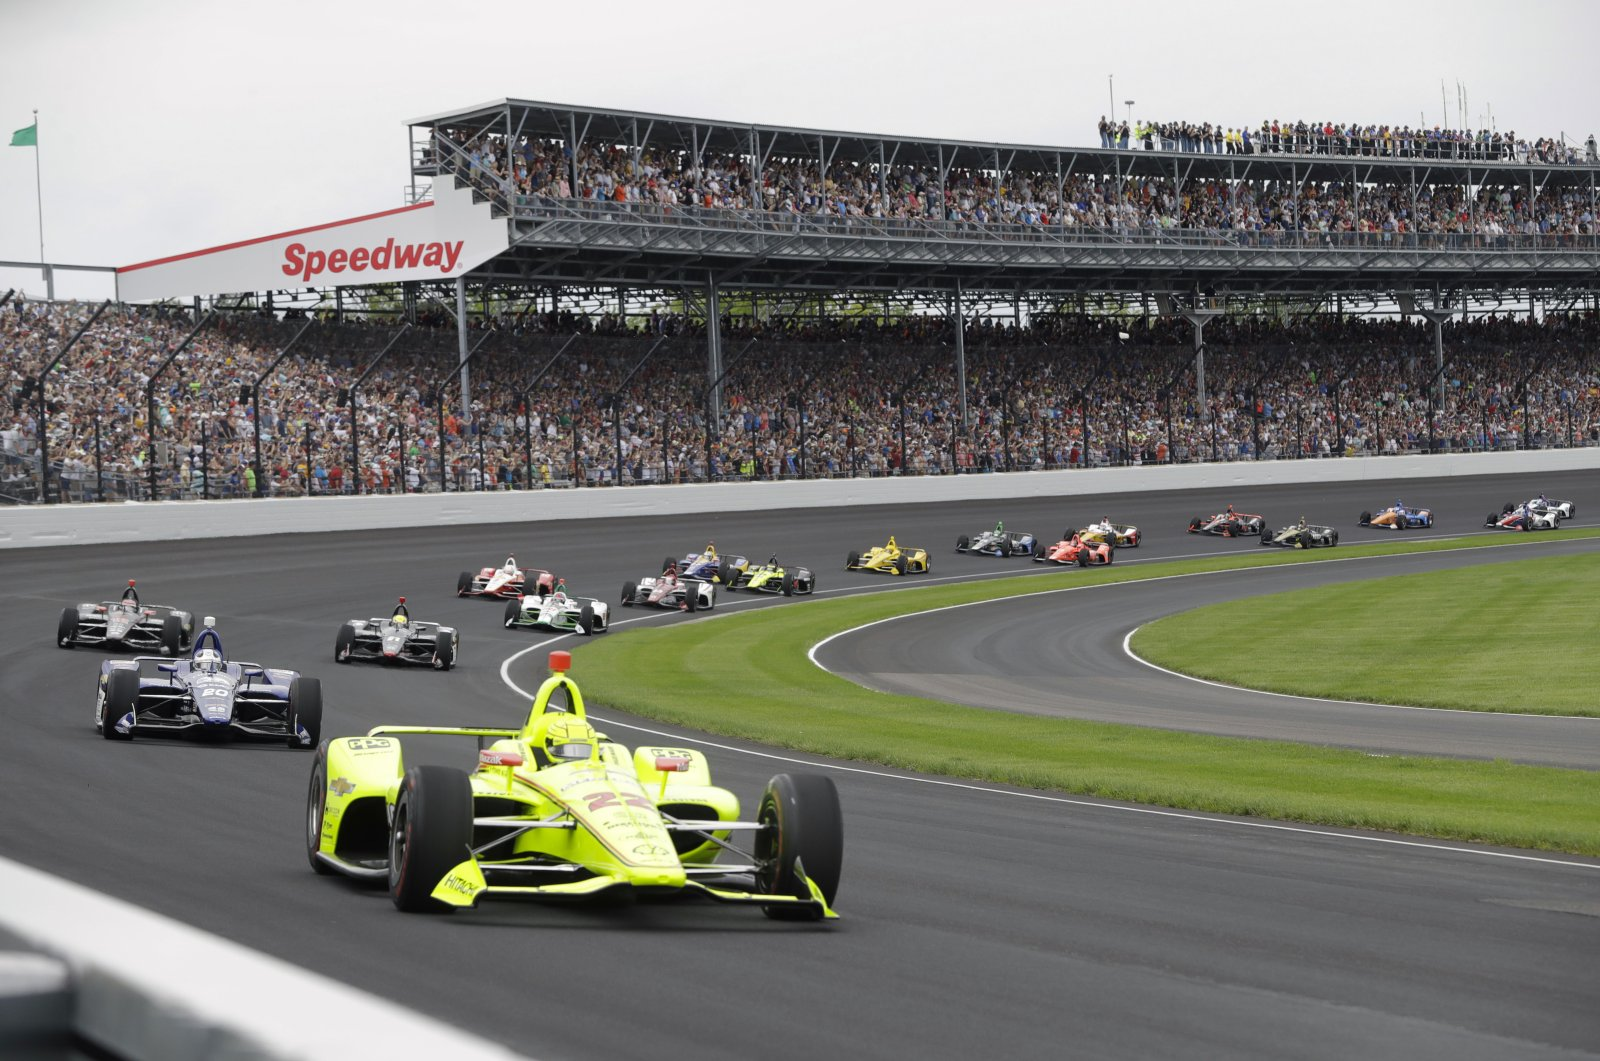 Simon Pagenaud leads the field through the first turn on the start of the Indianapolis 500 IndyCar auto race at Indianapolis Motor Speedway, in Indianapolis, U.S., May 26, 2019. (AP Photo)